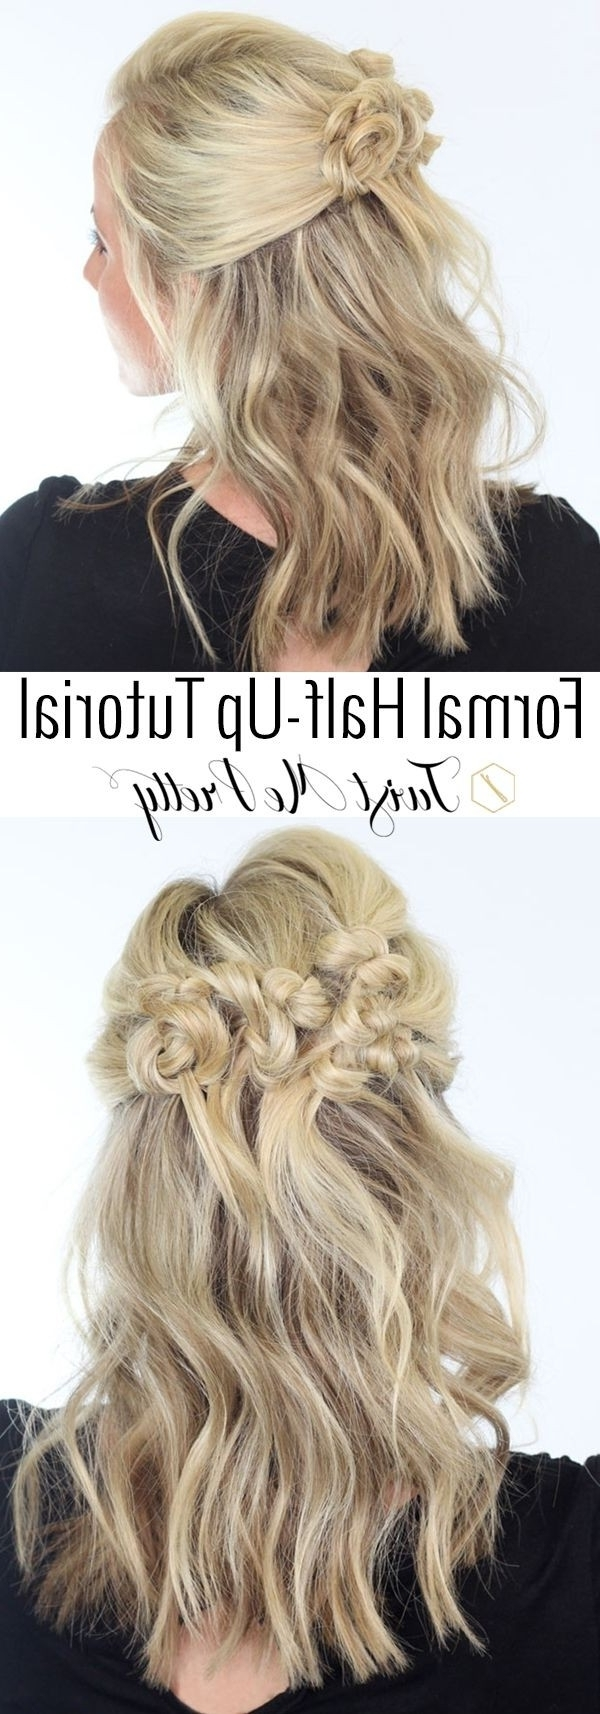 20 Great Hairstyles For Medium Length Hair 2016 – Pretty Designs Within Half Updos For Shoulder Length Hair (View 2 of 15)